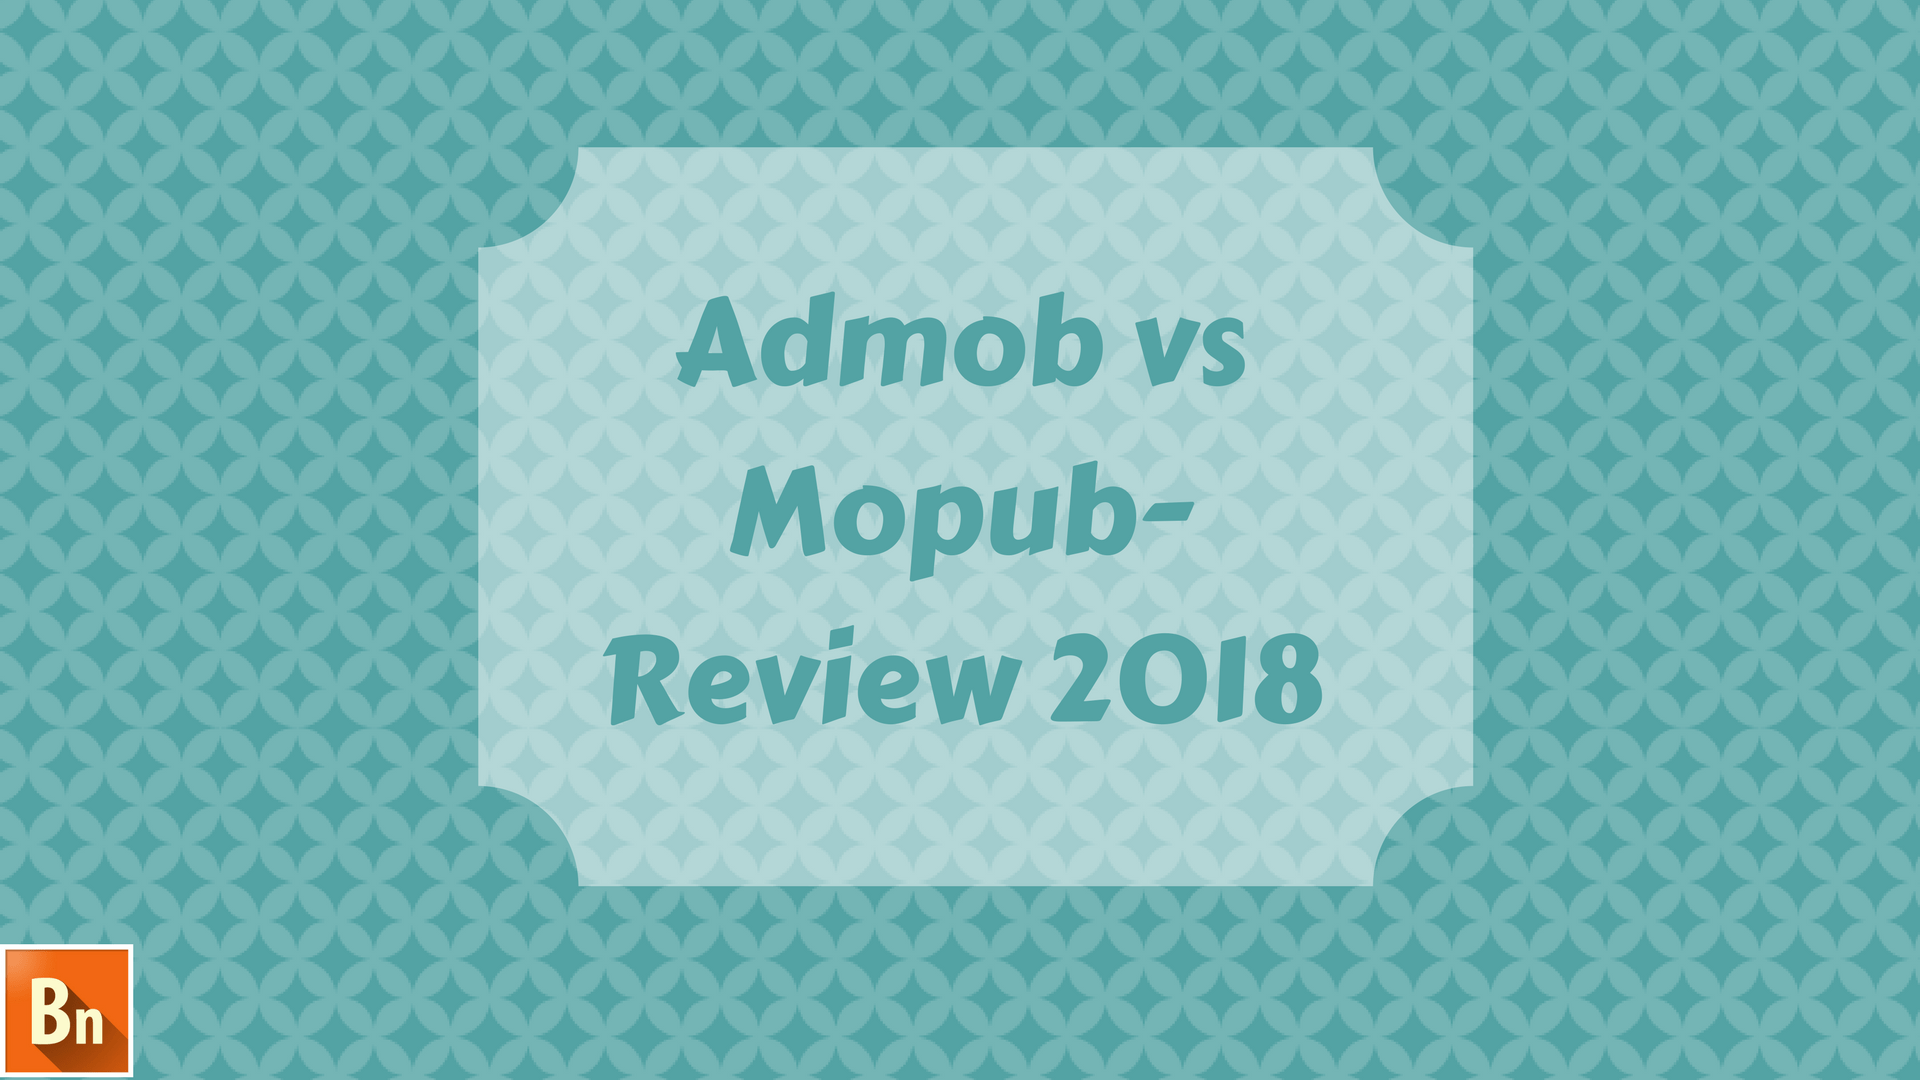 Admob vs Mopub- Review 2018